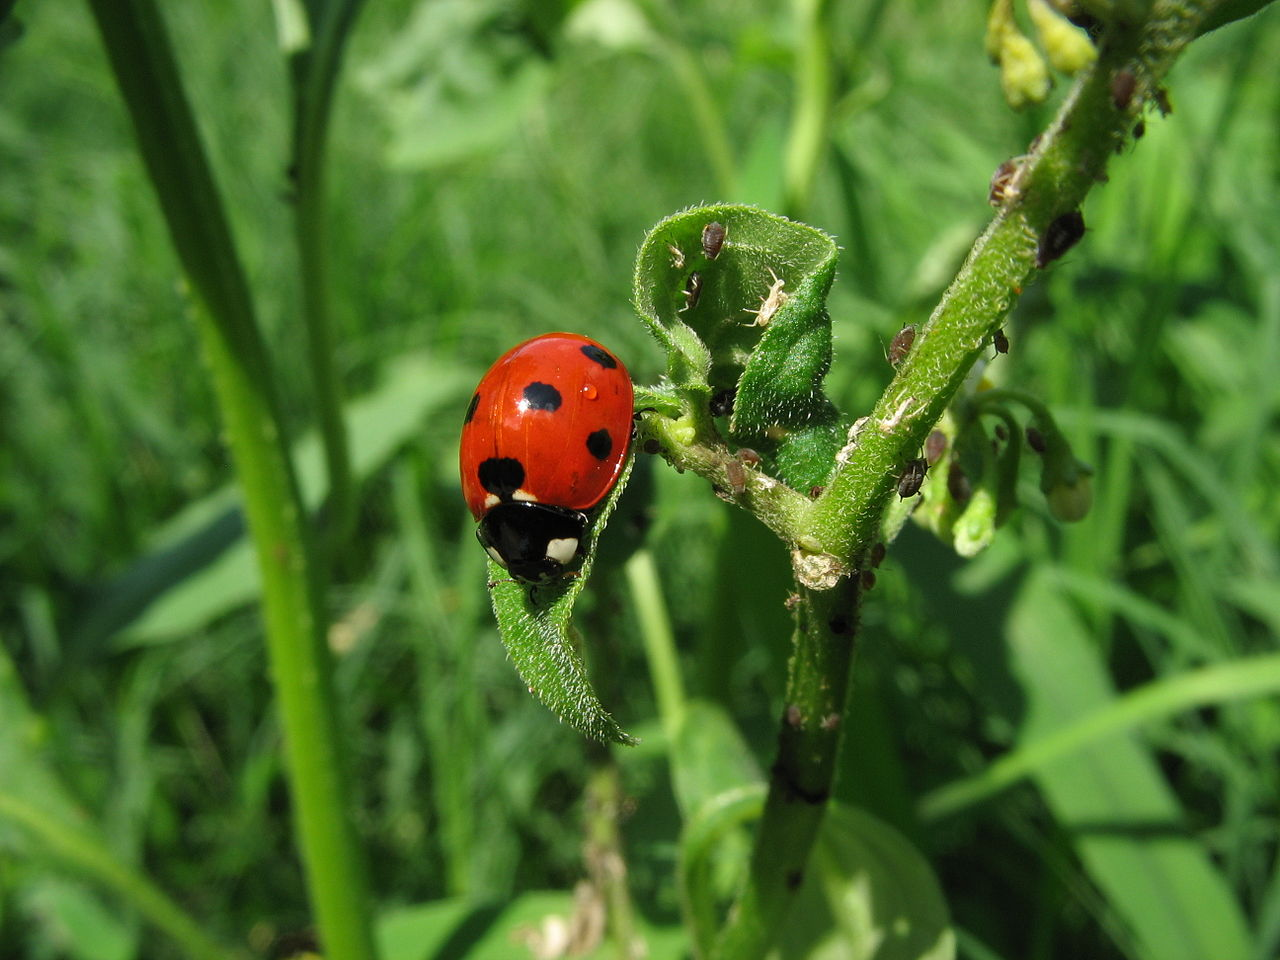 ladybug by Greyson Orlando Wikimedia Commons